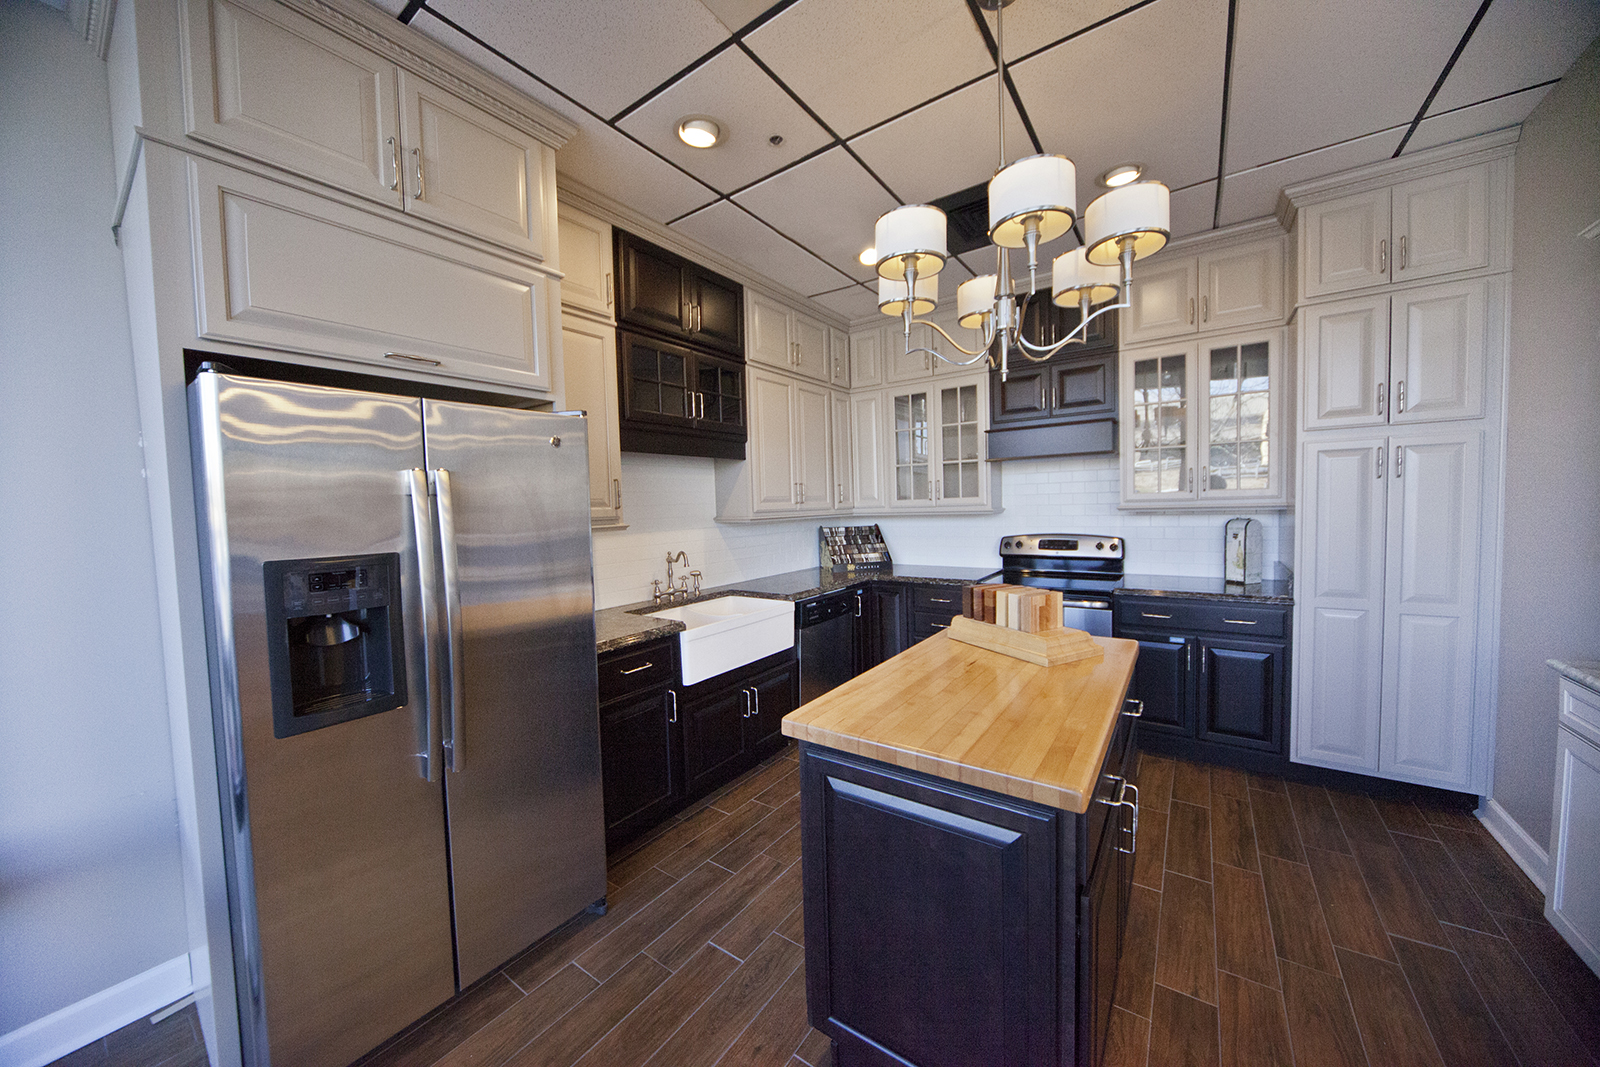 Hager Cabinets & Appliances in Lexington KY | Hager